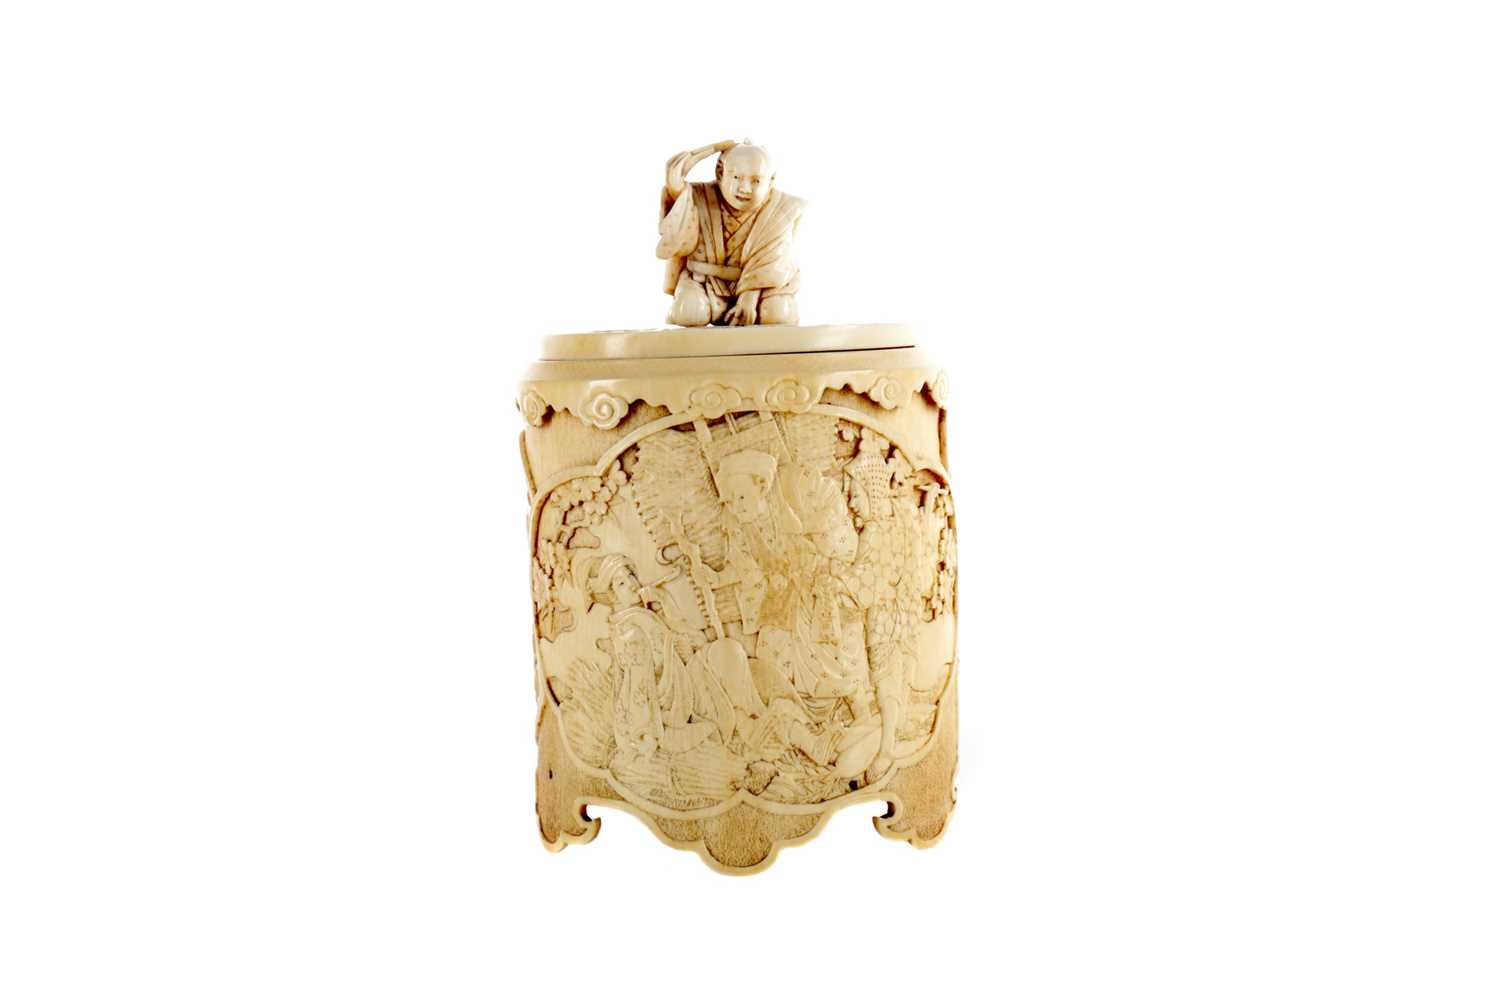 Lot 817 - AN EARLY 20TH CENTURY JAPANESE IVORY BOX